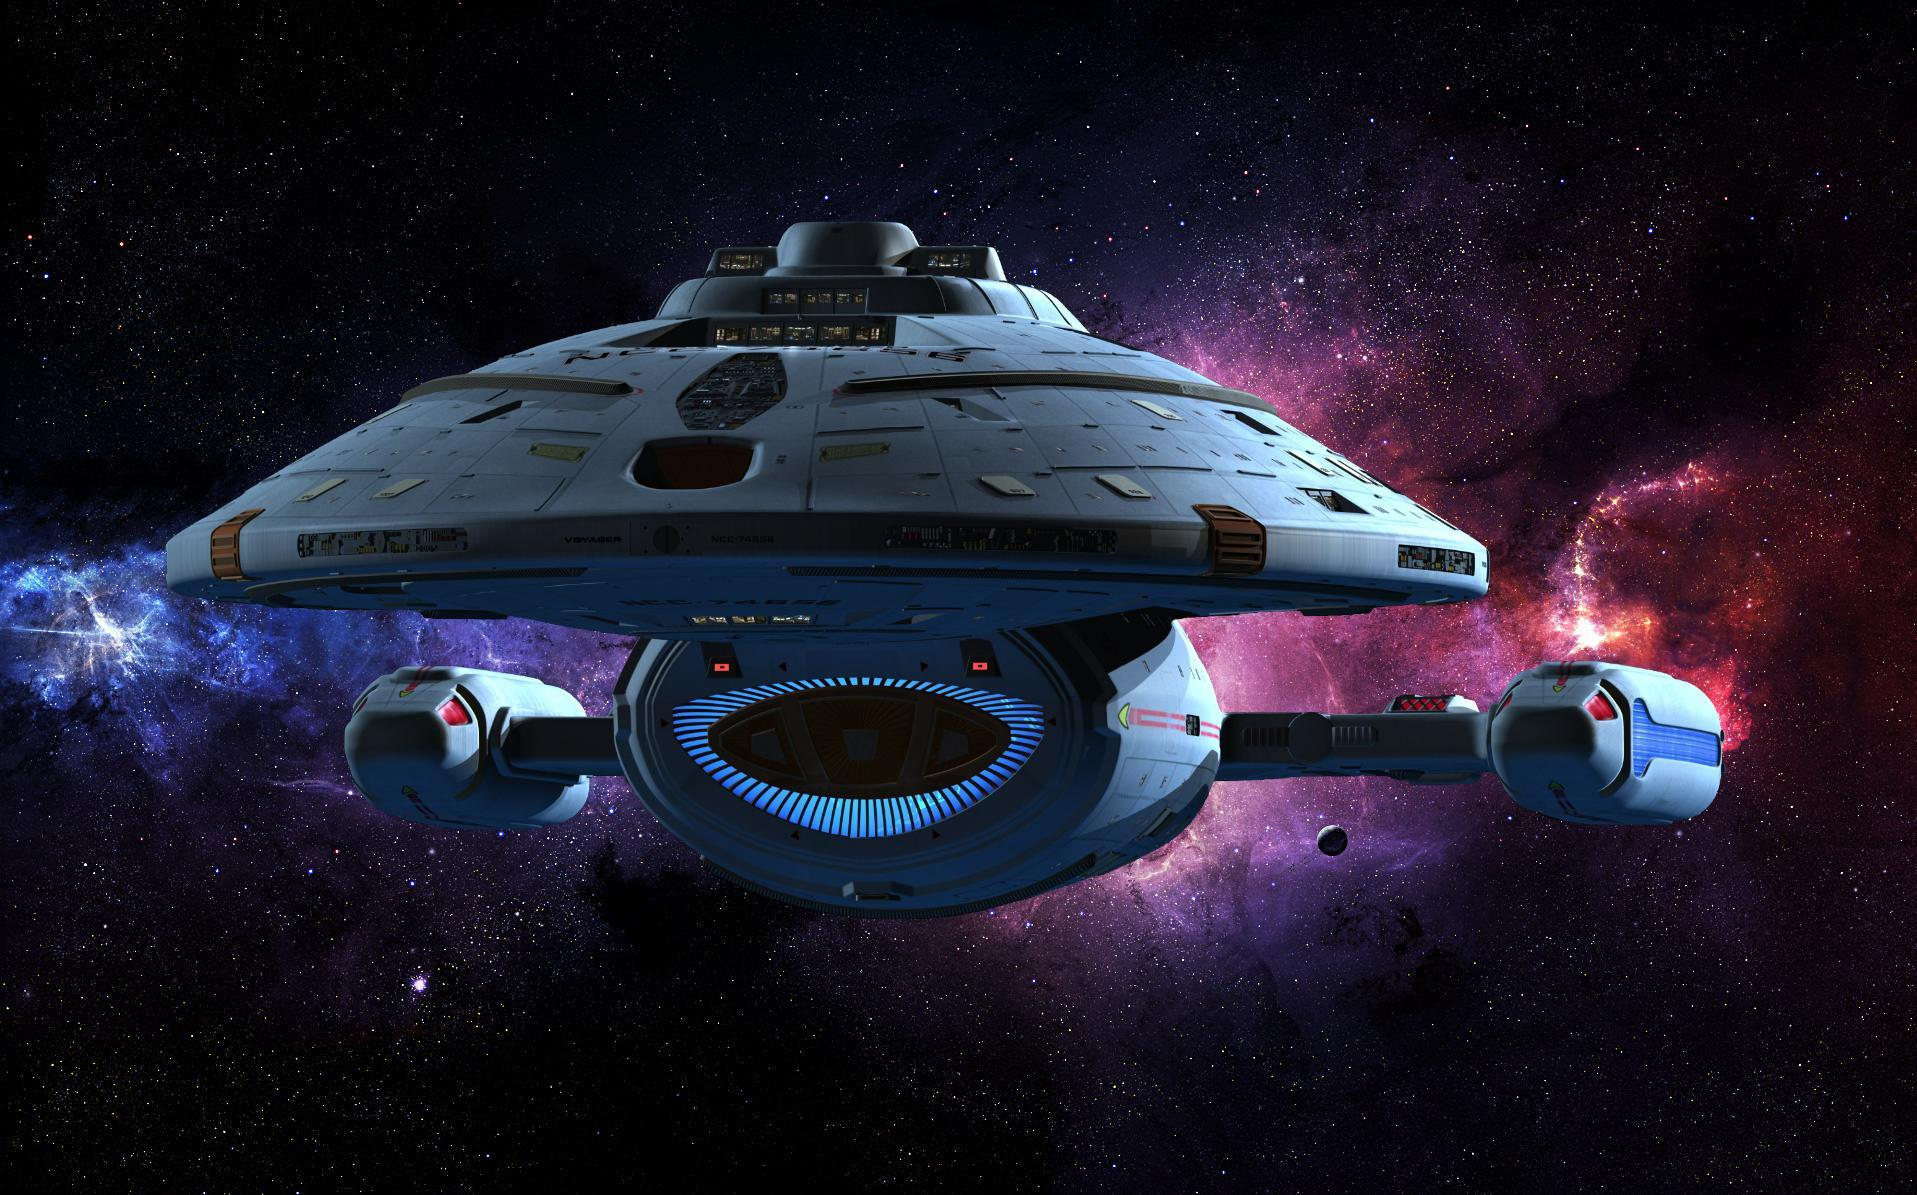 star trek wallpaper by - photo #5